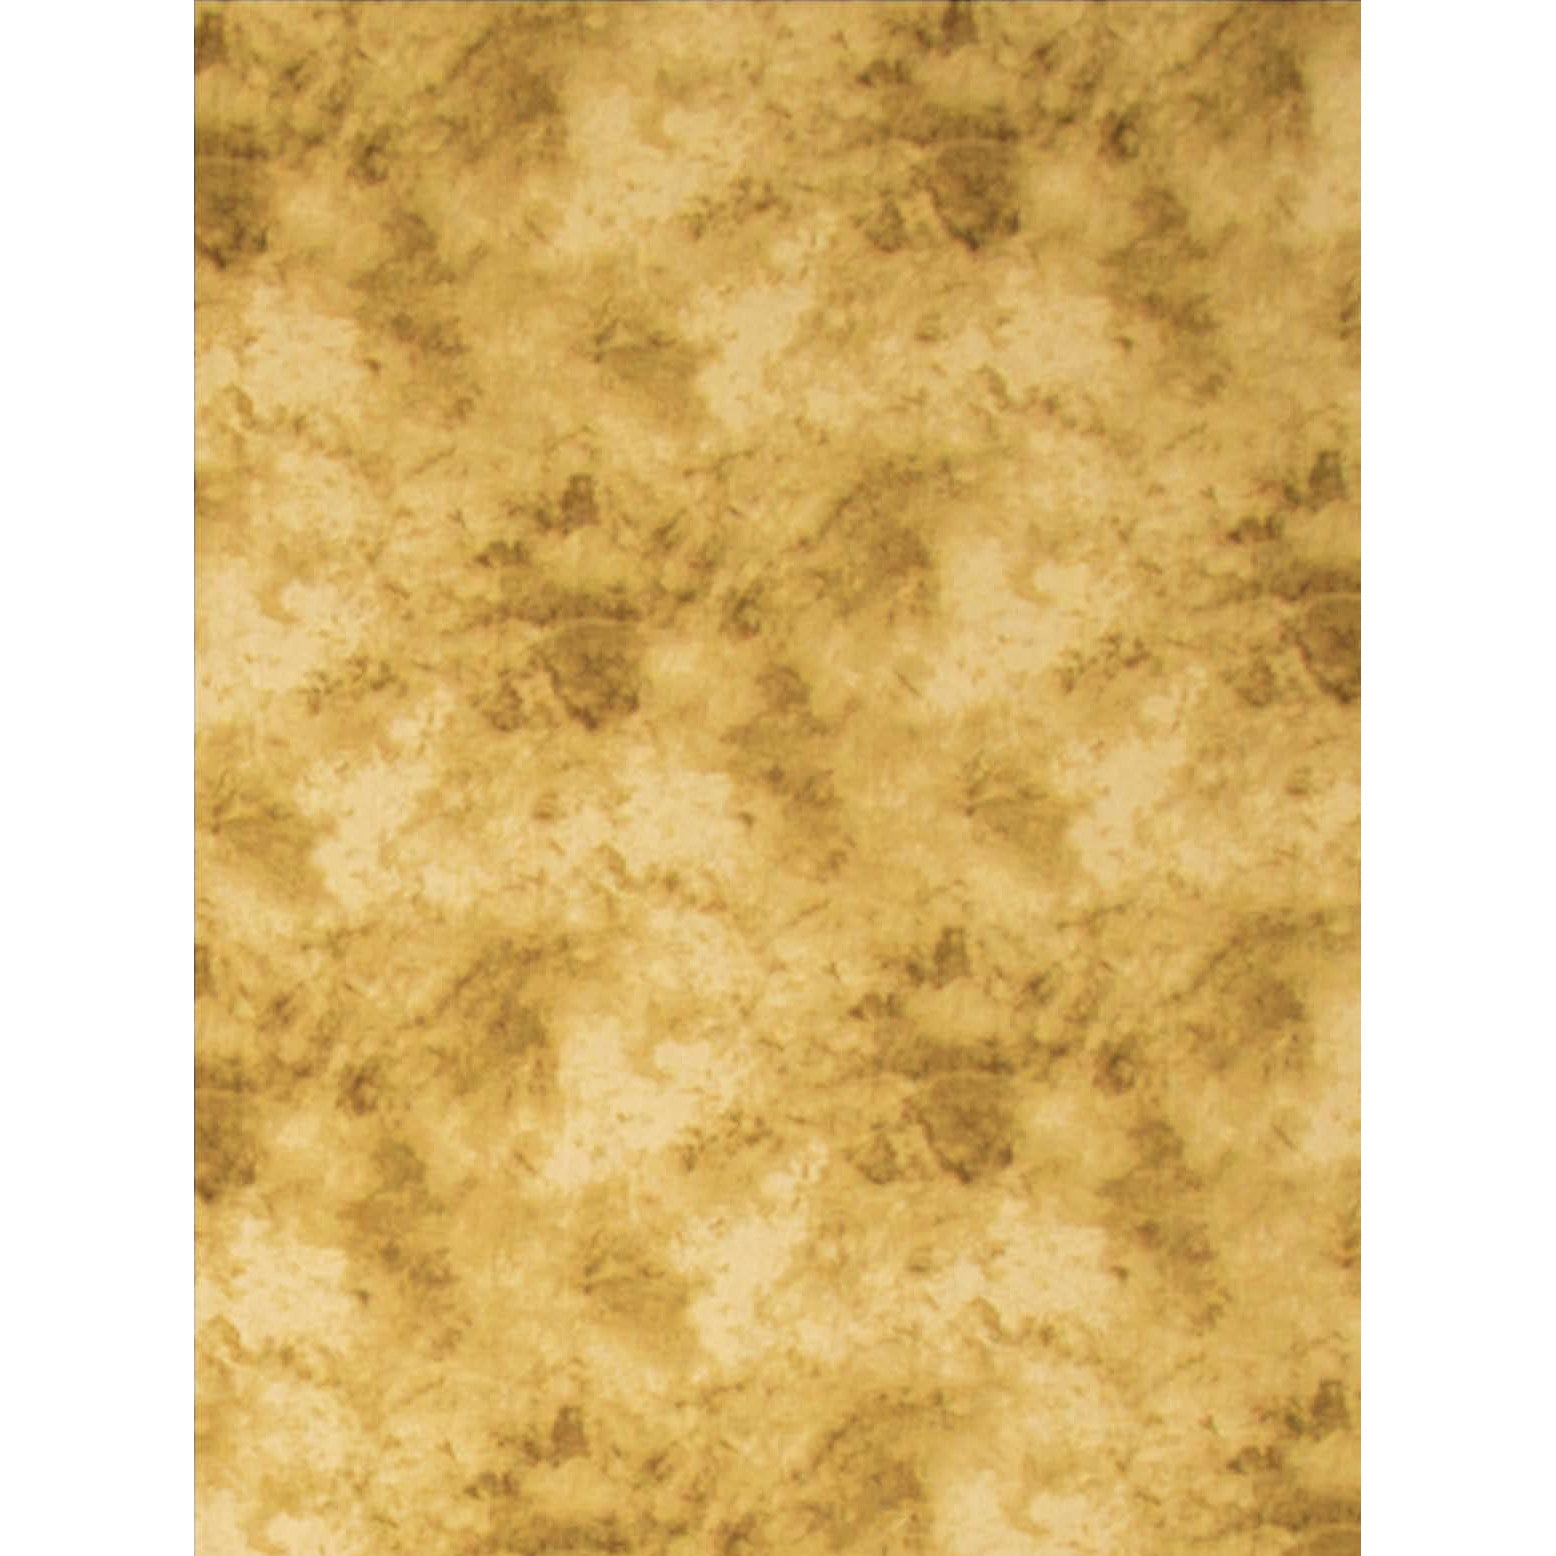 ProMaster Cloud Dyed Backdrop - 10'x20' - Tan